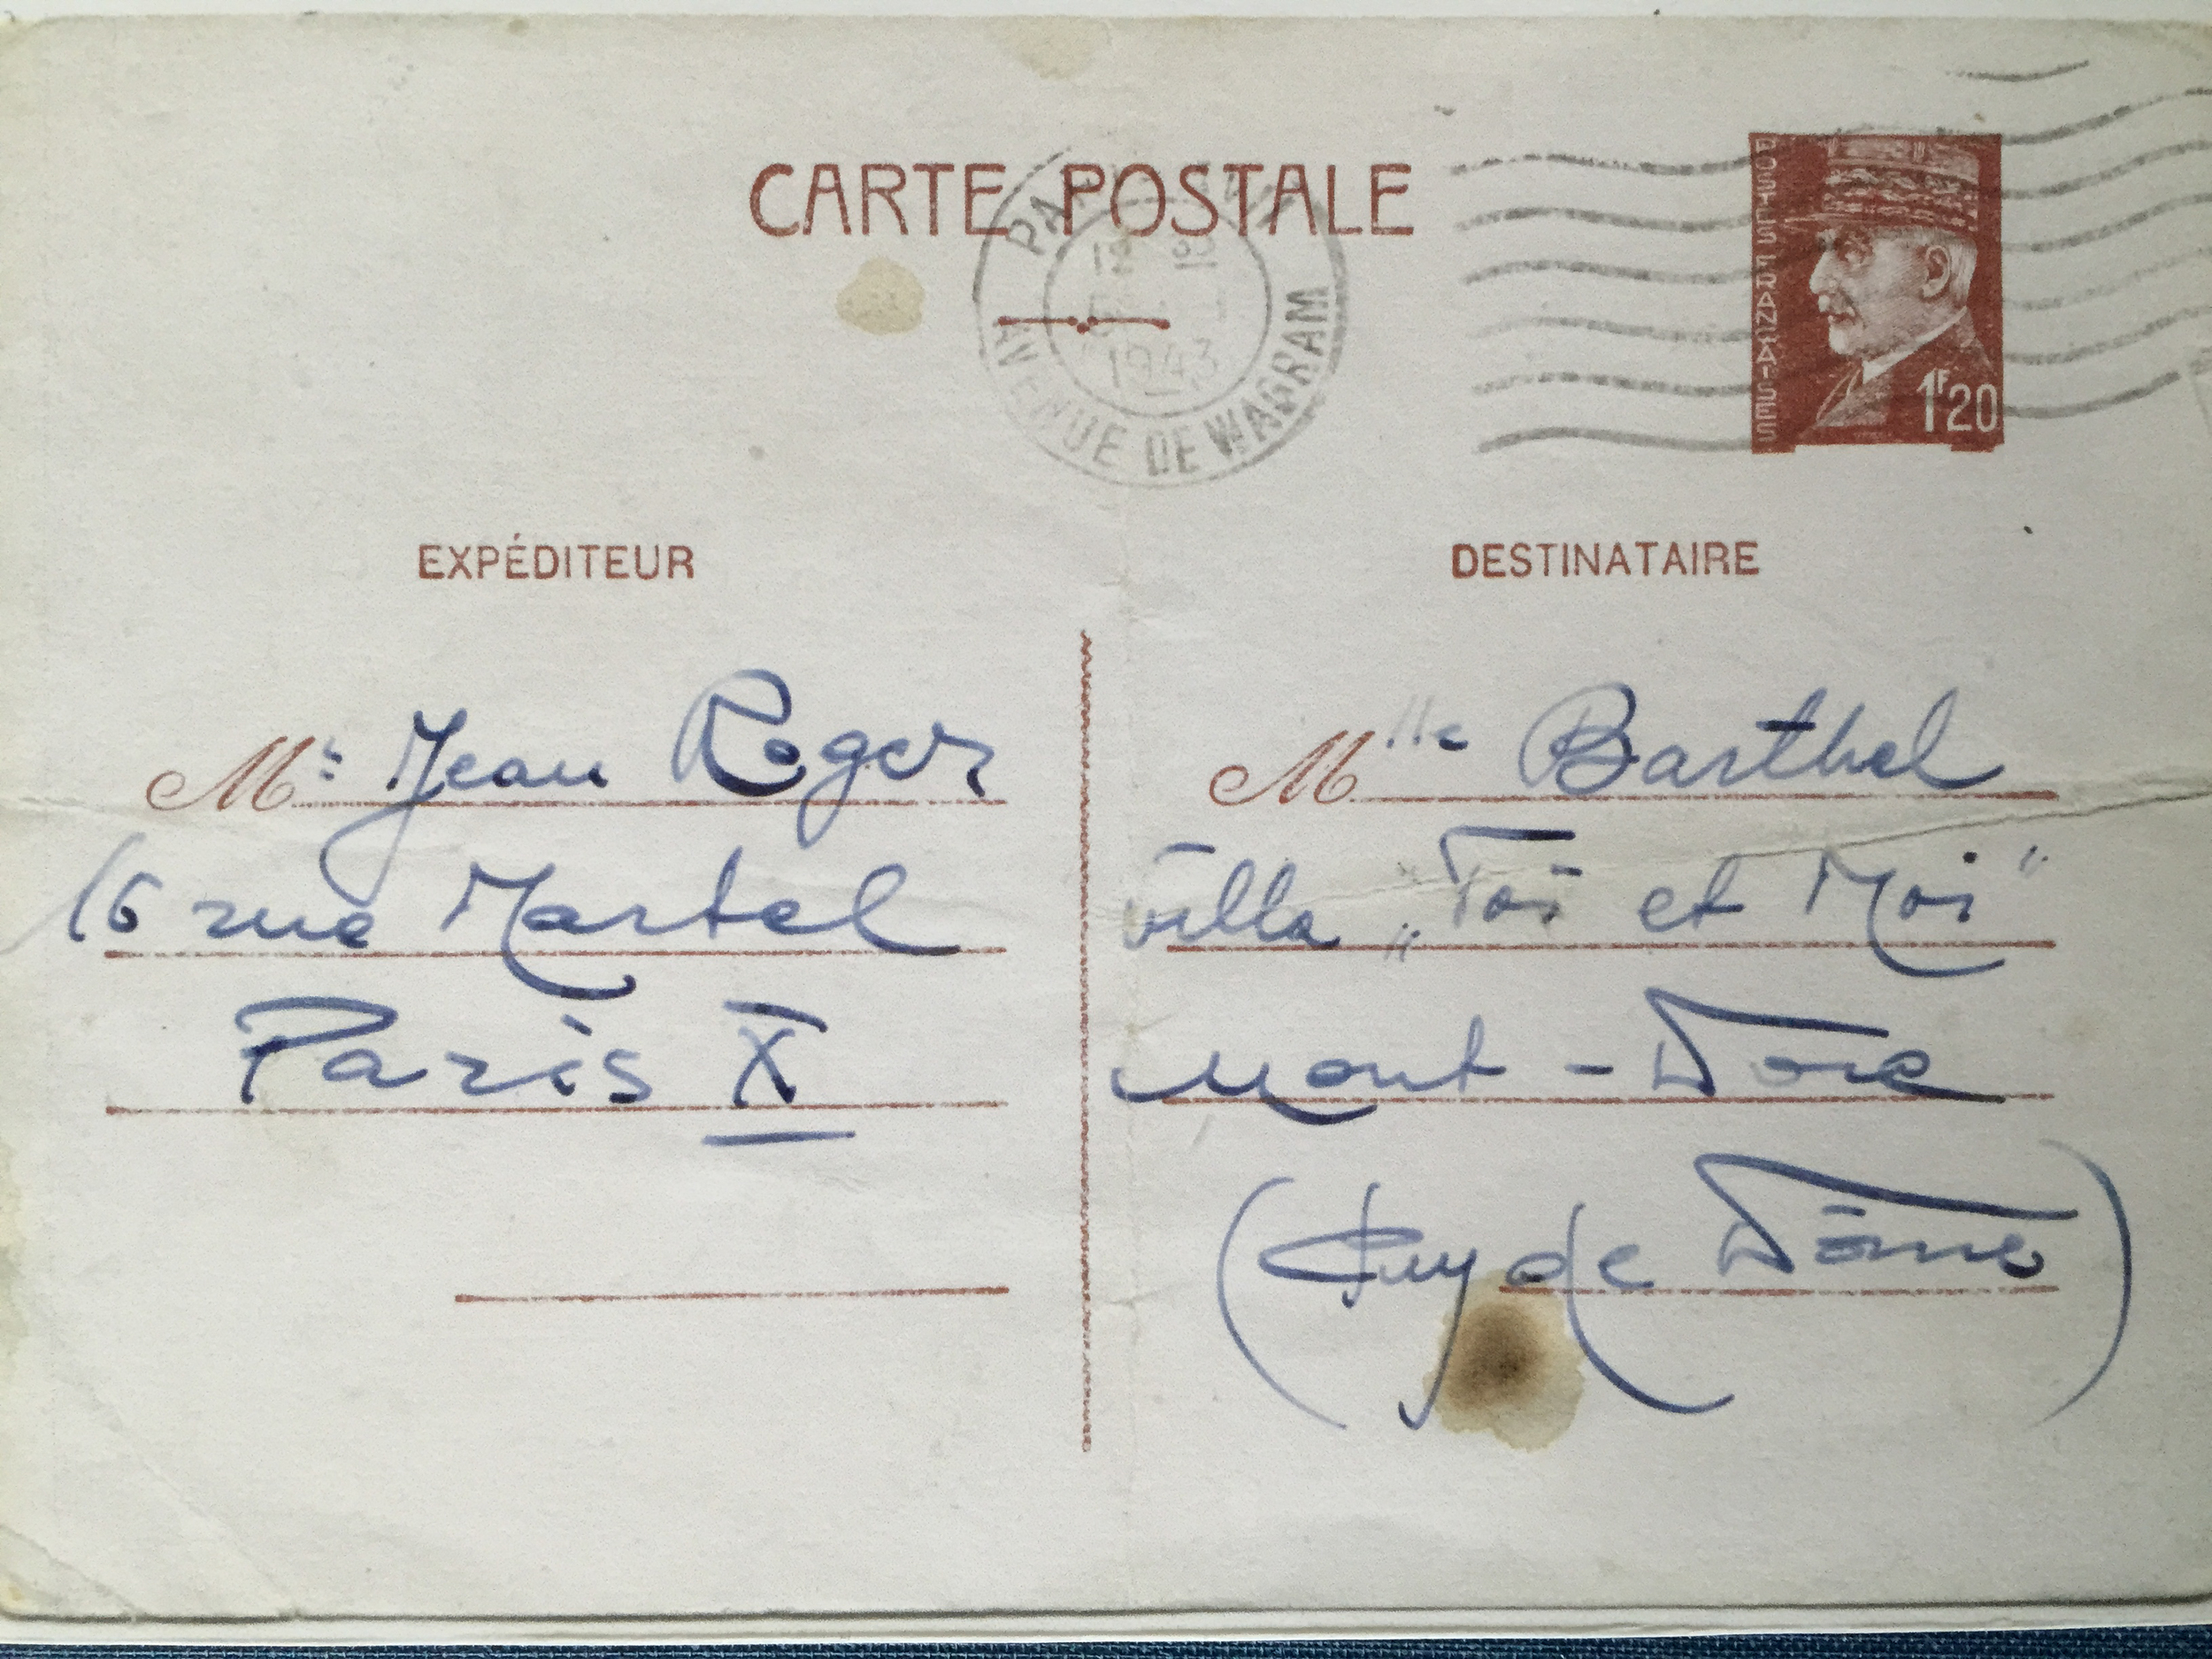 A postcard addressed to the Barthels, the name given to the Finkielsztajns while they were in hiding. (Muriel Hasbun archive.)